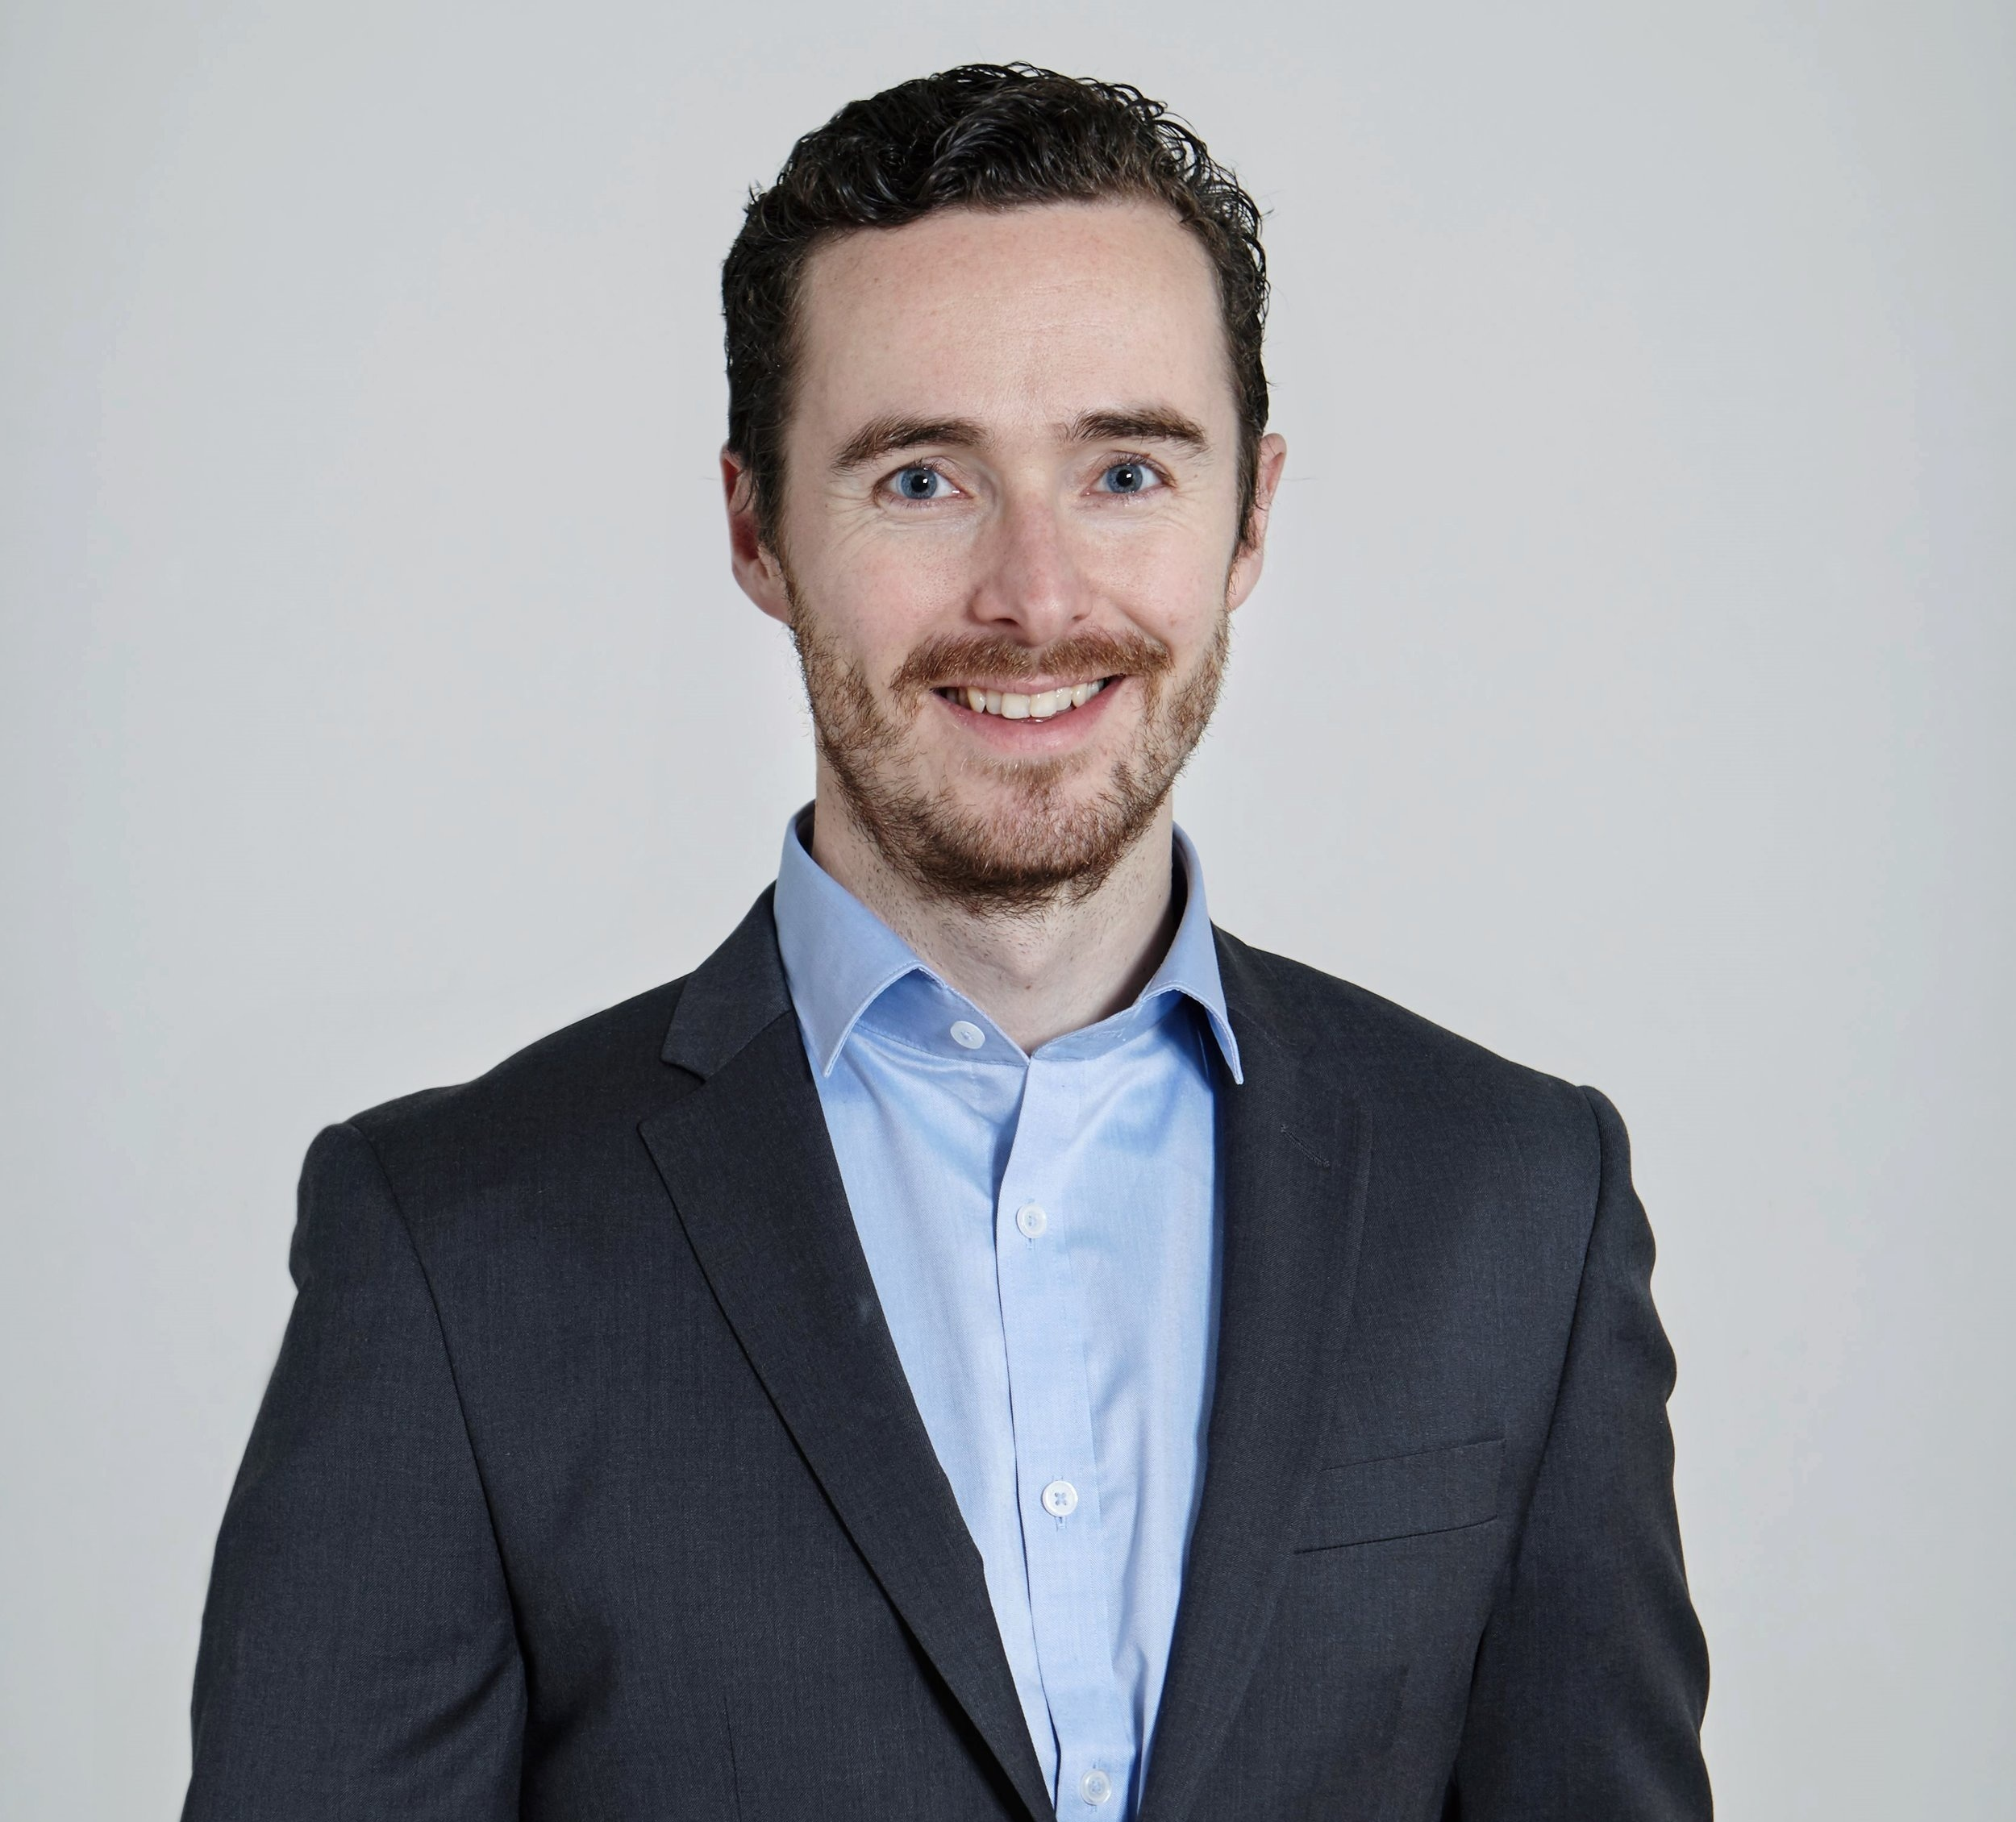 Rasmus Fonnesbaek ANDERSEN, PhD    Senior Consultant, Dalberg   Rasmus Andersen is passionate about entrepreneurship, broad-based growth and political accountability in emerging markets, especially using new technology and data analytics.   View More